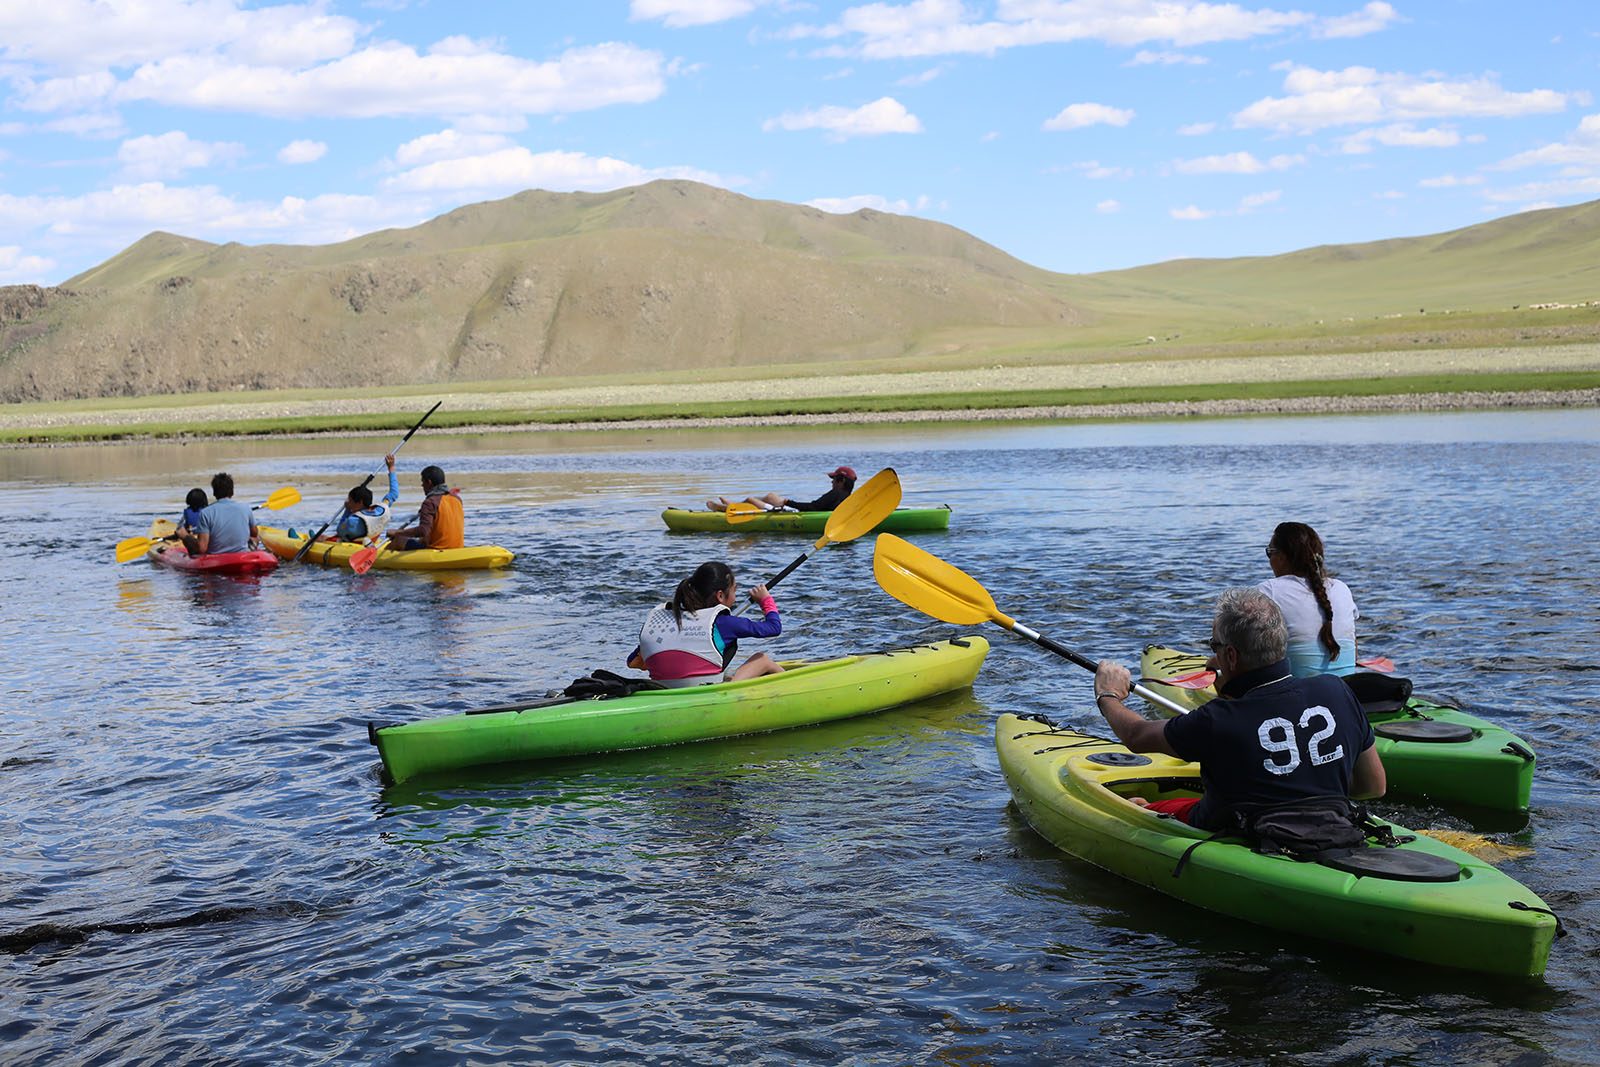 Kayaking in Mongolia